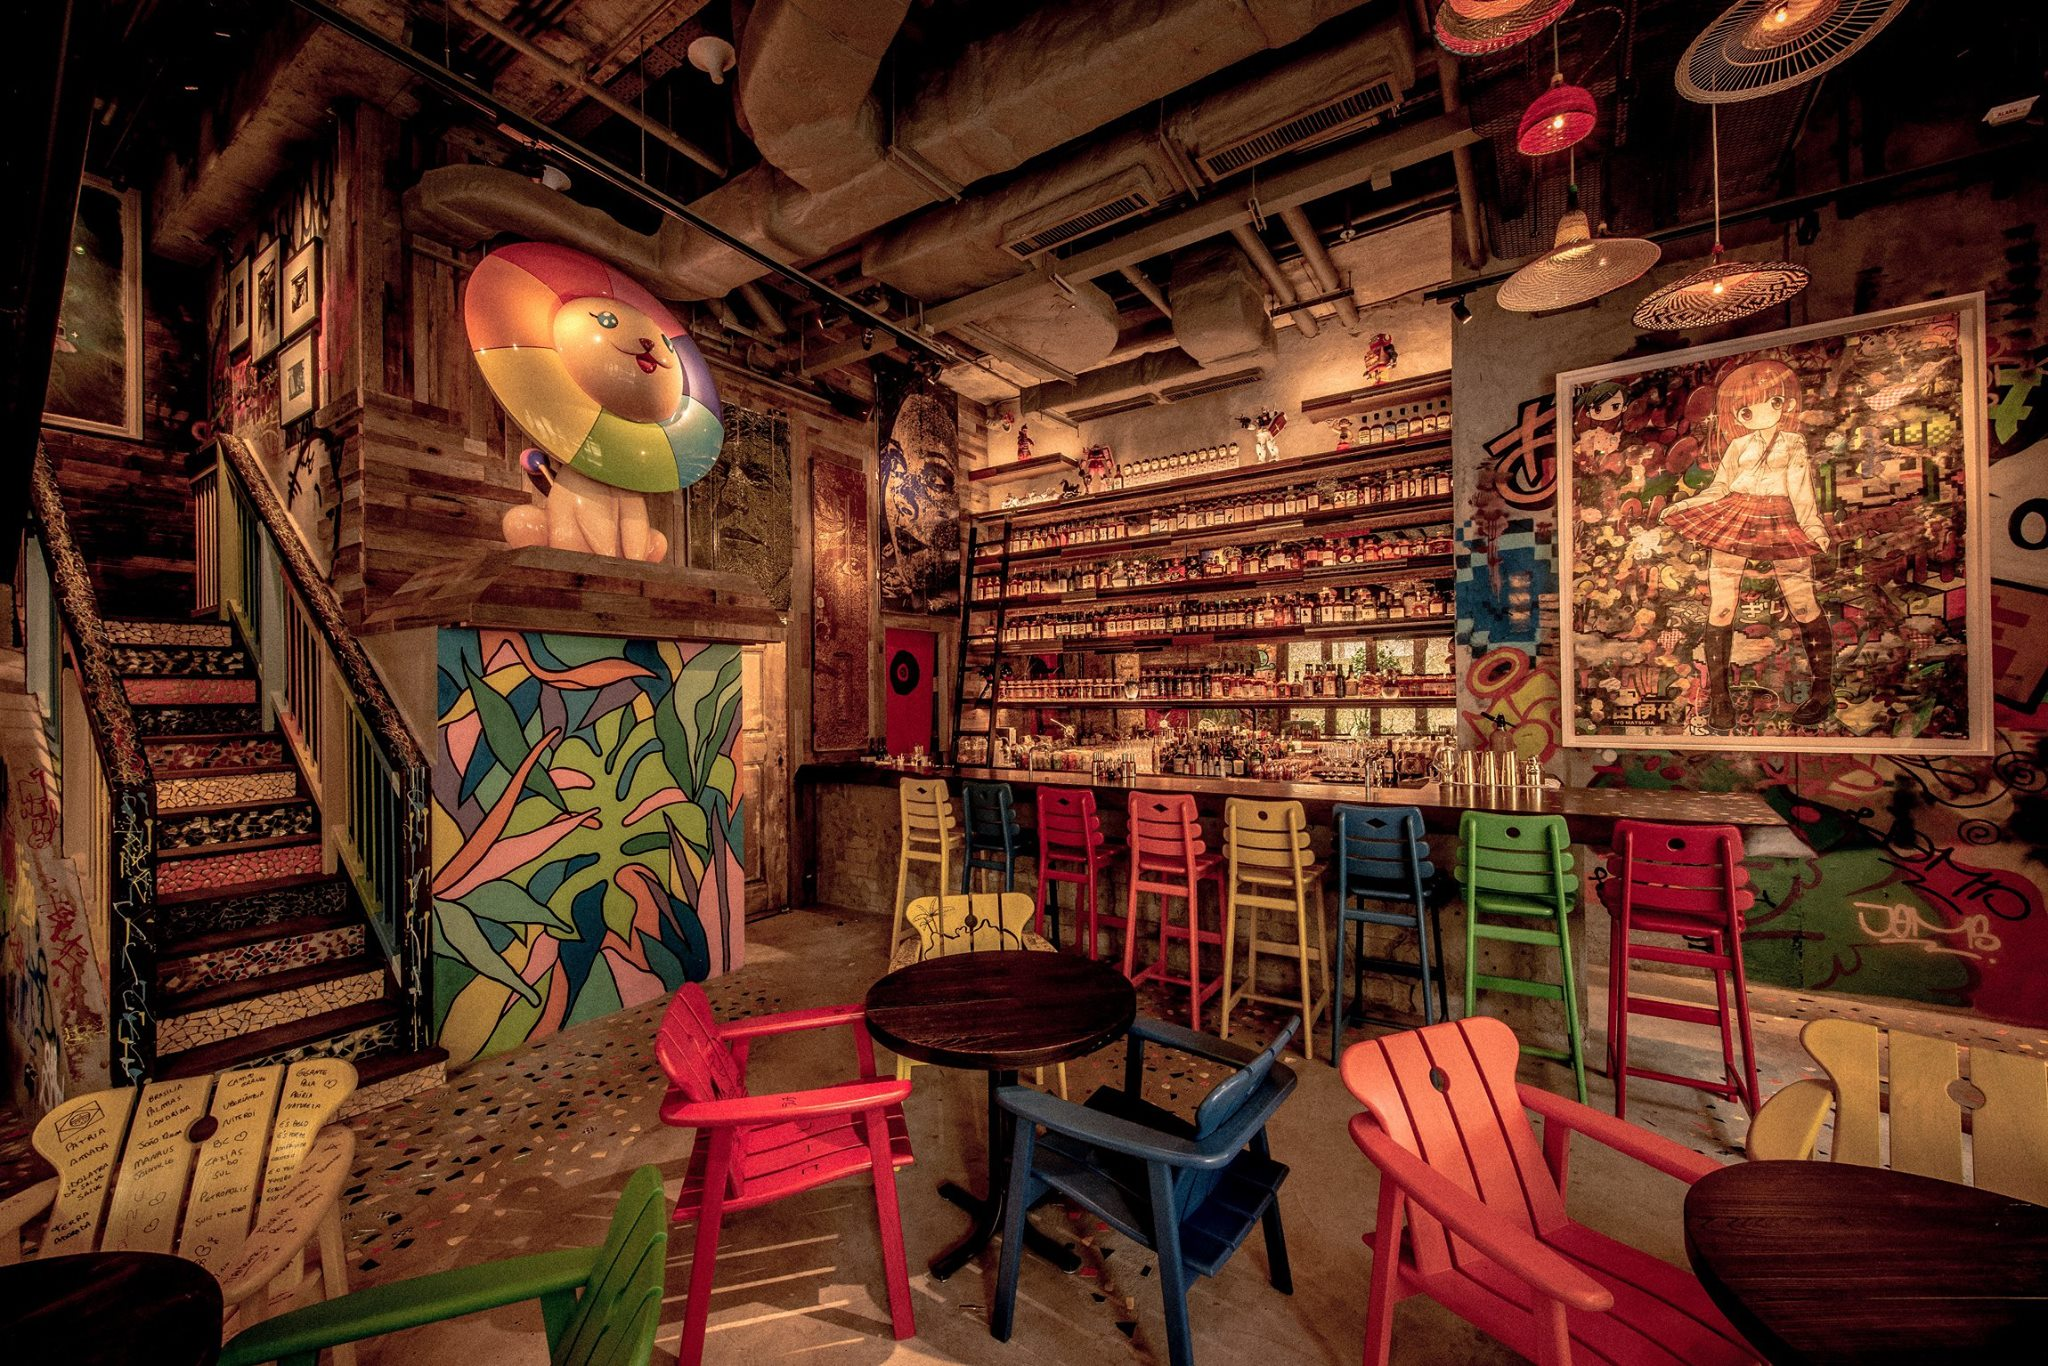 Djapa - Located in the heart of Wan Chai, this colorful favela-chicinspired restaurant and bar fuses the intricacy and freshness ofJapanese cuisine with the bold and hearty flavors of Brazil. HongKong first's Nipo-Brasileiro restaurant and whisky bar is not justa place for drinking and dining, art lovers will also revel in thecolourful artworks by renowned Japanese and Brazilian artists.Events CapacityBar & Lounge (ground floor): 40 seats / 70 standing guestsRestaurant (first floor): 60 seats / 100 standing guestsFull privatization: 170 standing guestsOutside catering is available from Djapa restaurantShops G18-20, Lee Tune Avenue, 200 Queen's Road East,Wan Chai, Hong Kong